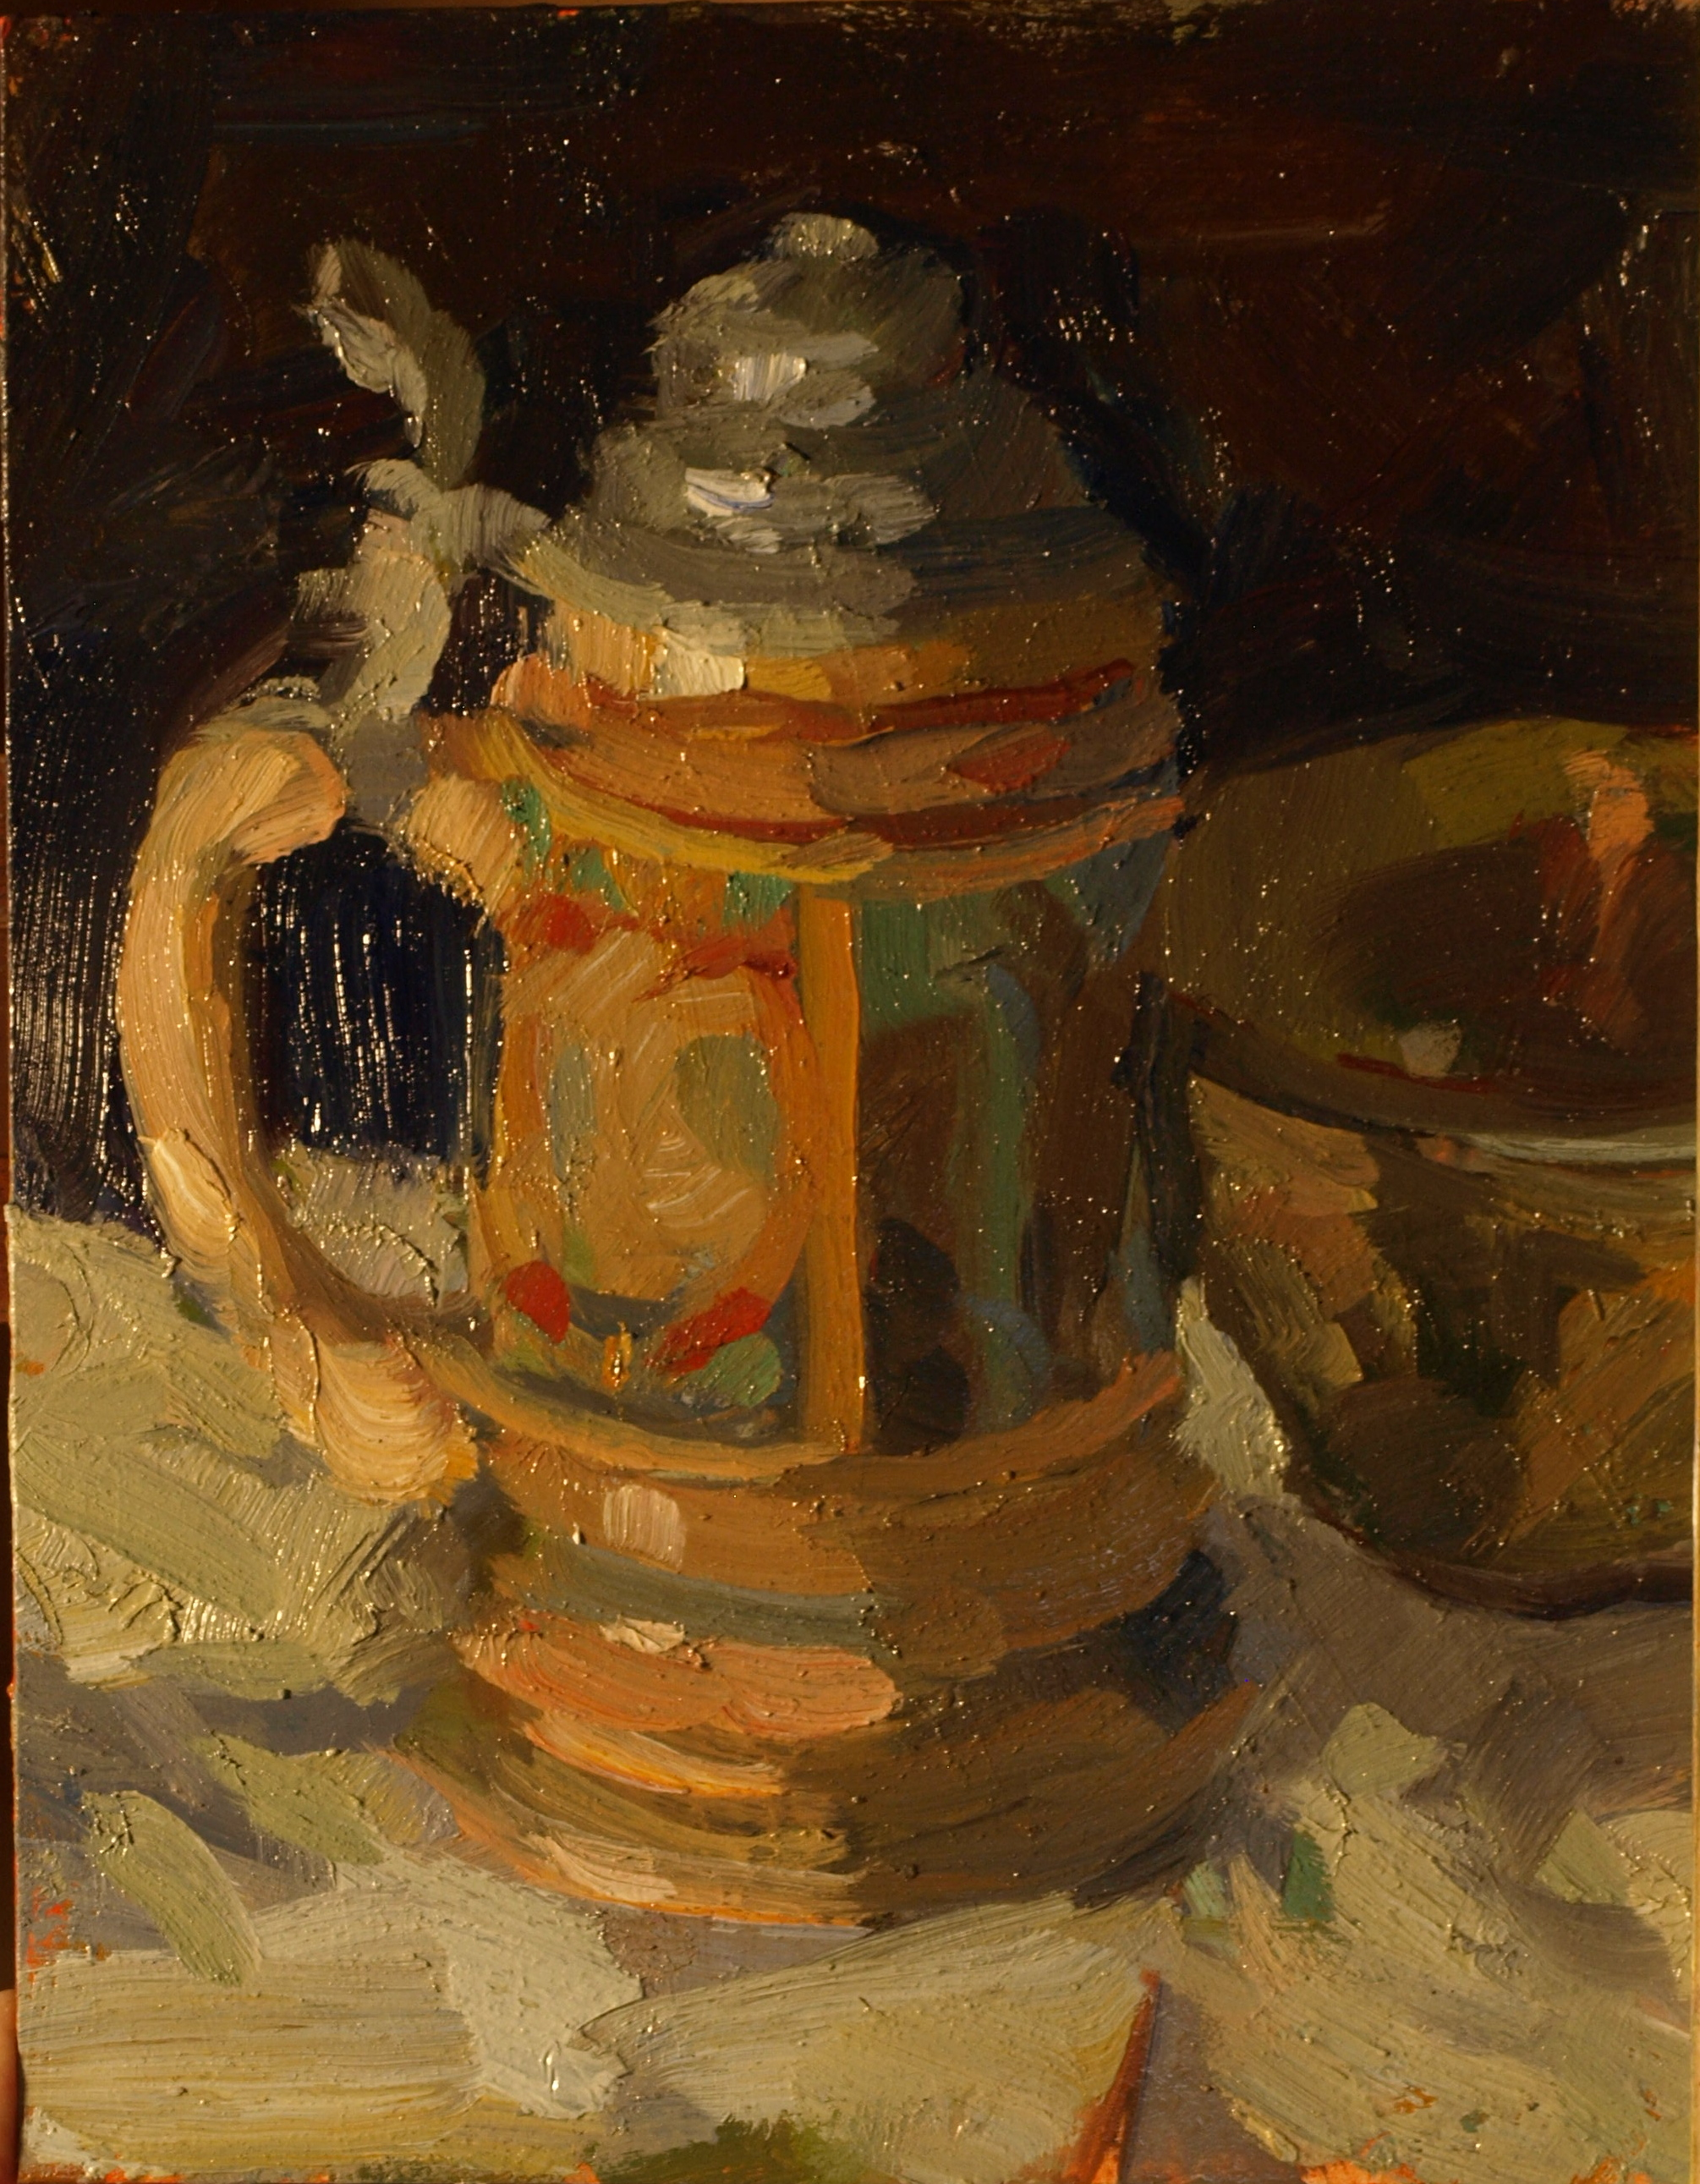 Stein, Oil on Panel, 10 x 8 Inches, by Susan Grisell, $200